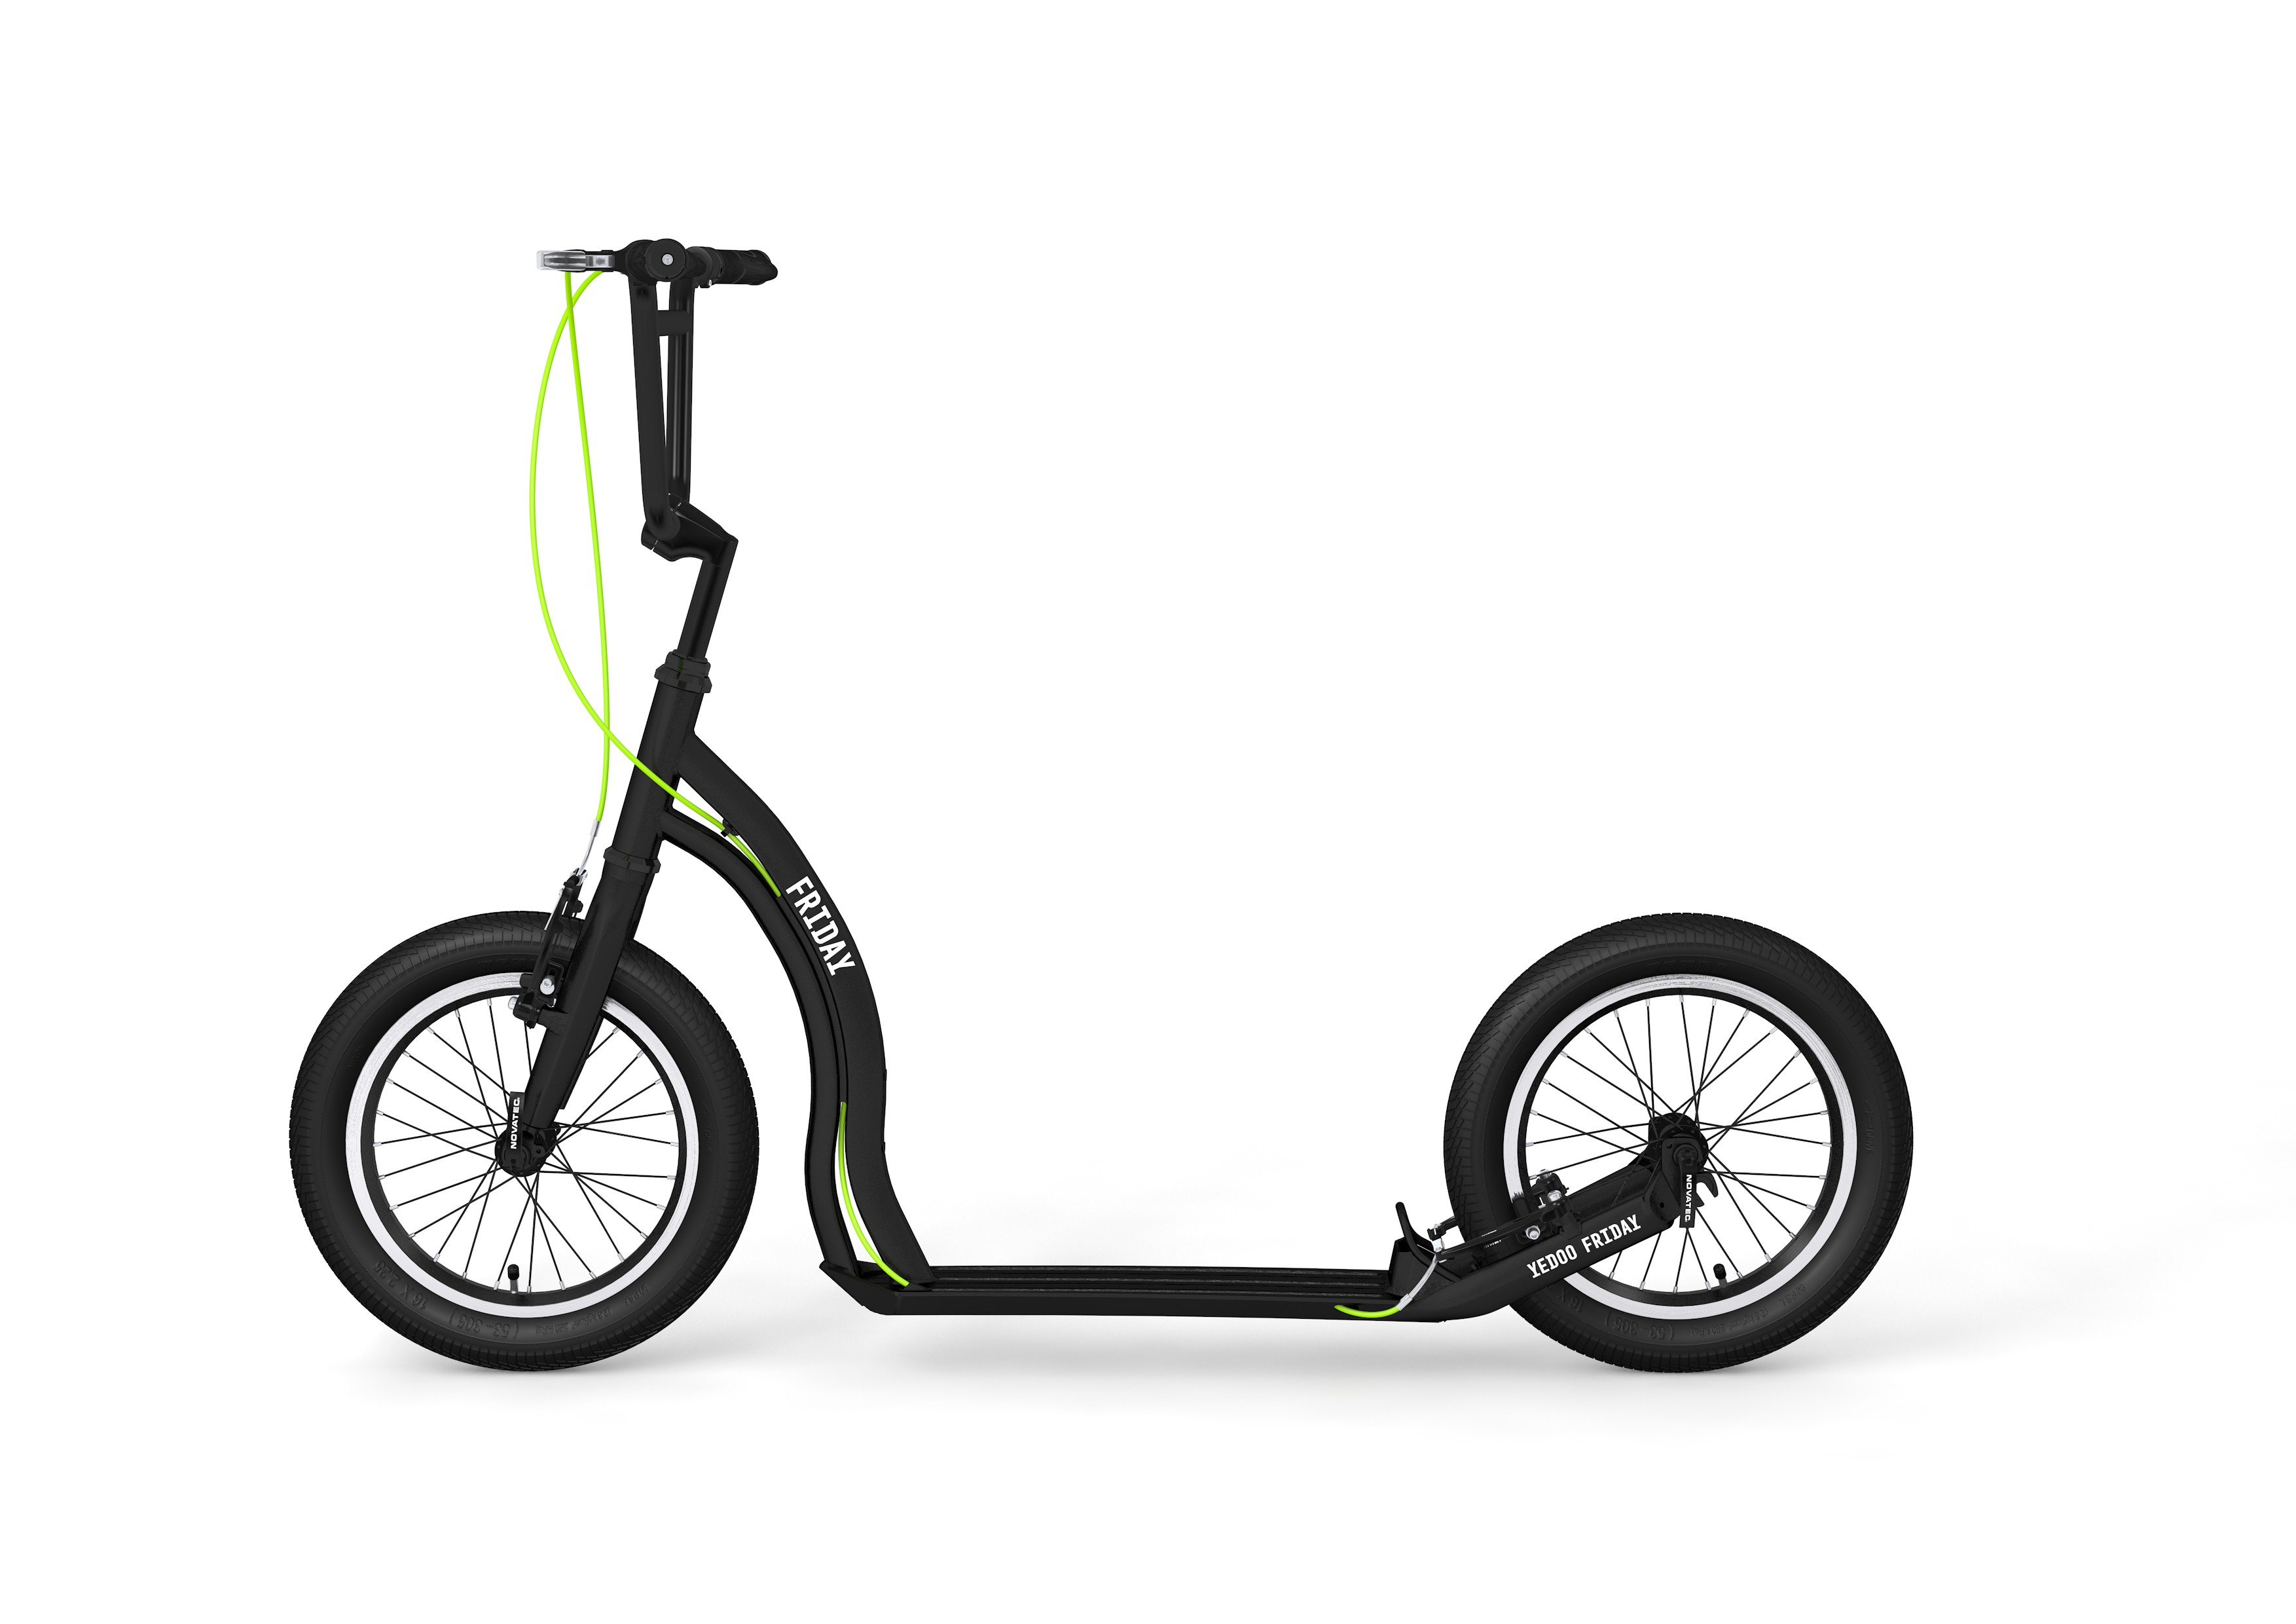 yedoo tretroller friday alu black 16 16 dogscooter cityroller tretroller tretroller nach. Black Bedroom Furniture Sets. Home Design Ideas